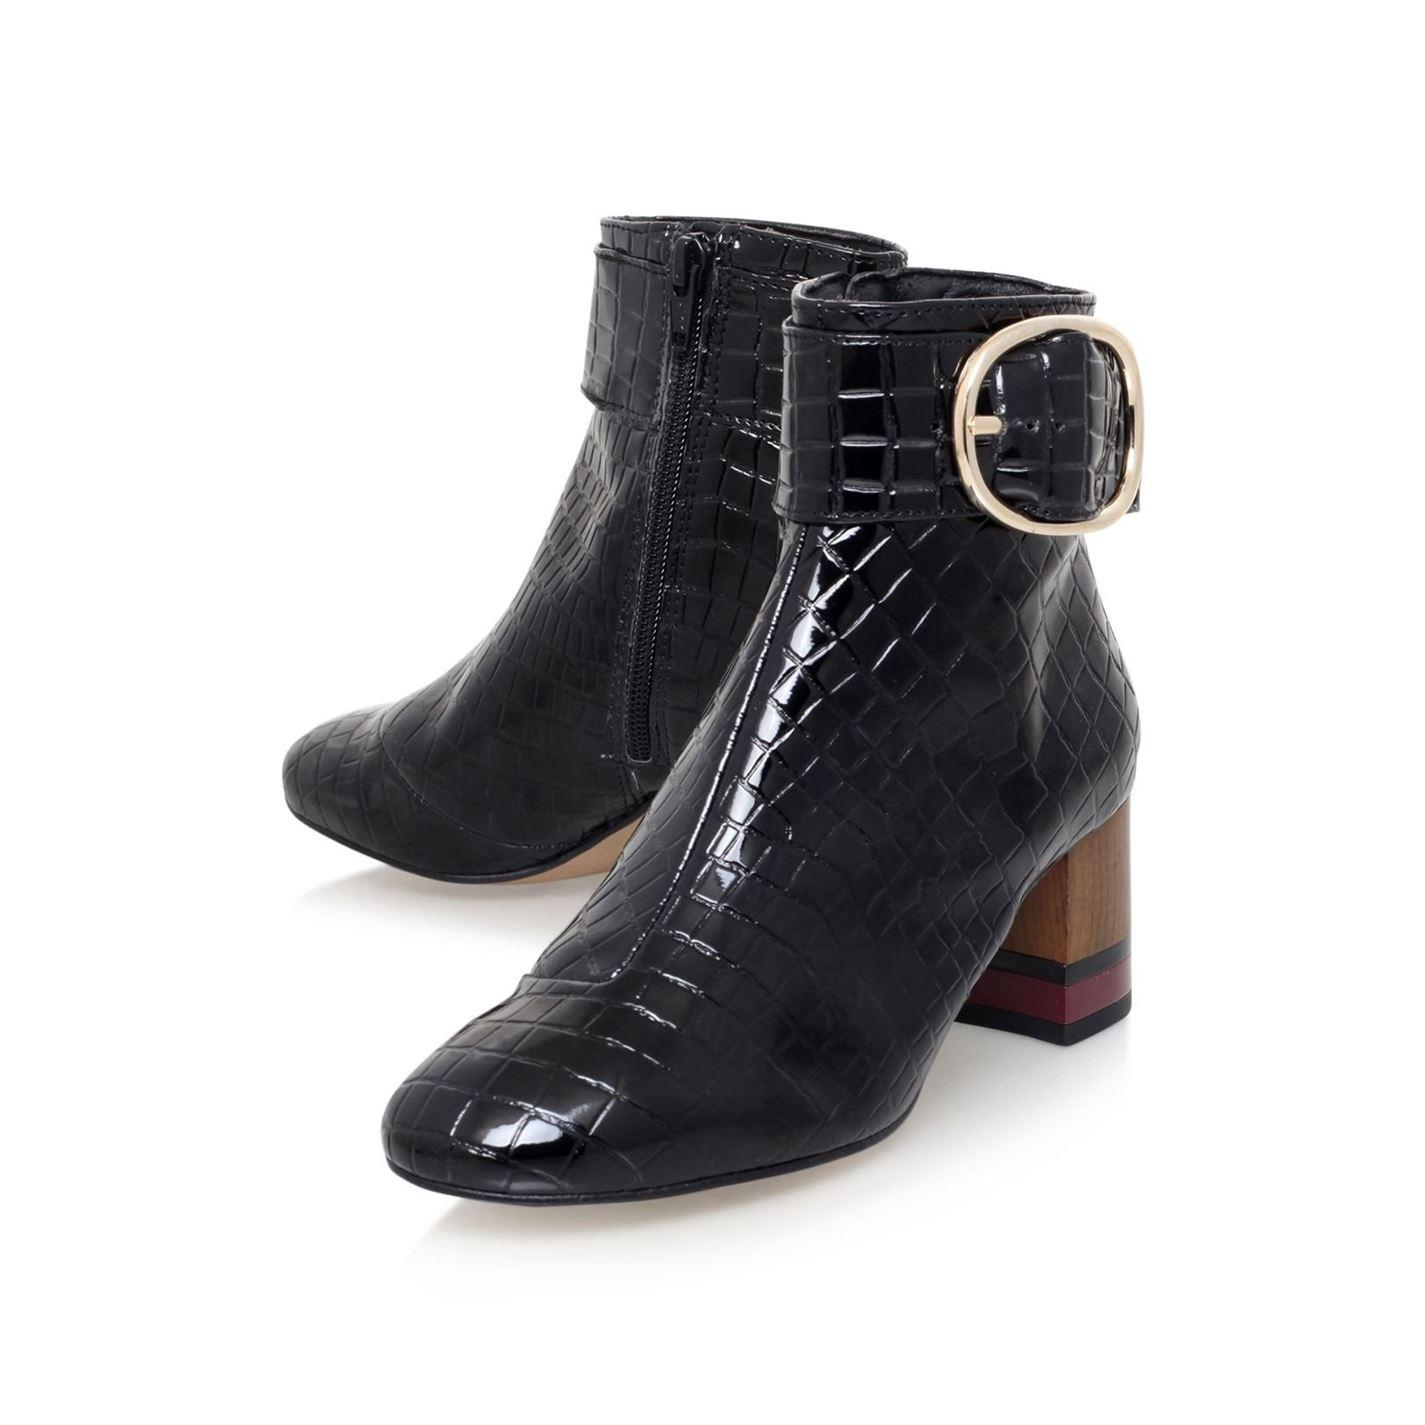 a388530611f Women's Black Ringo Zip Up Ankle Boots